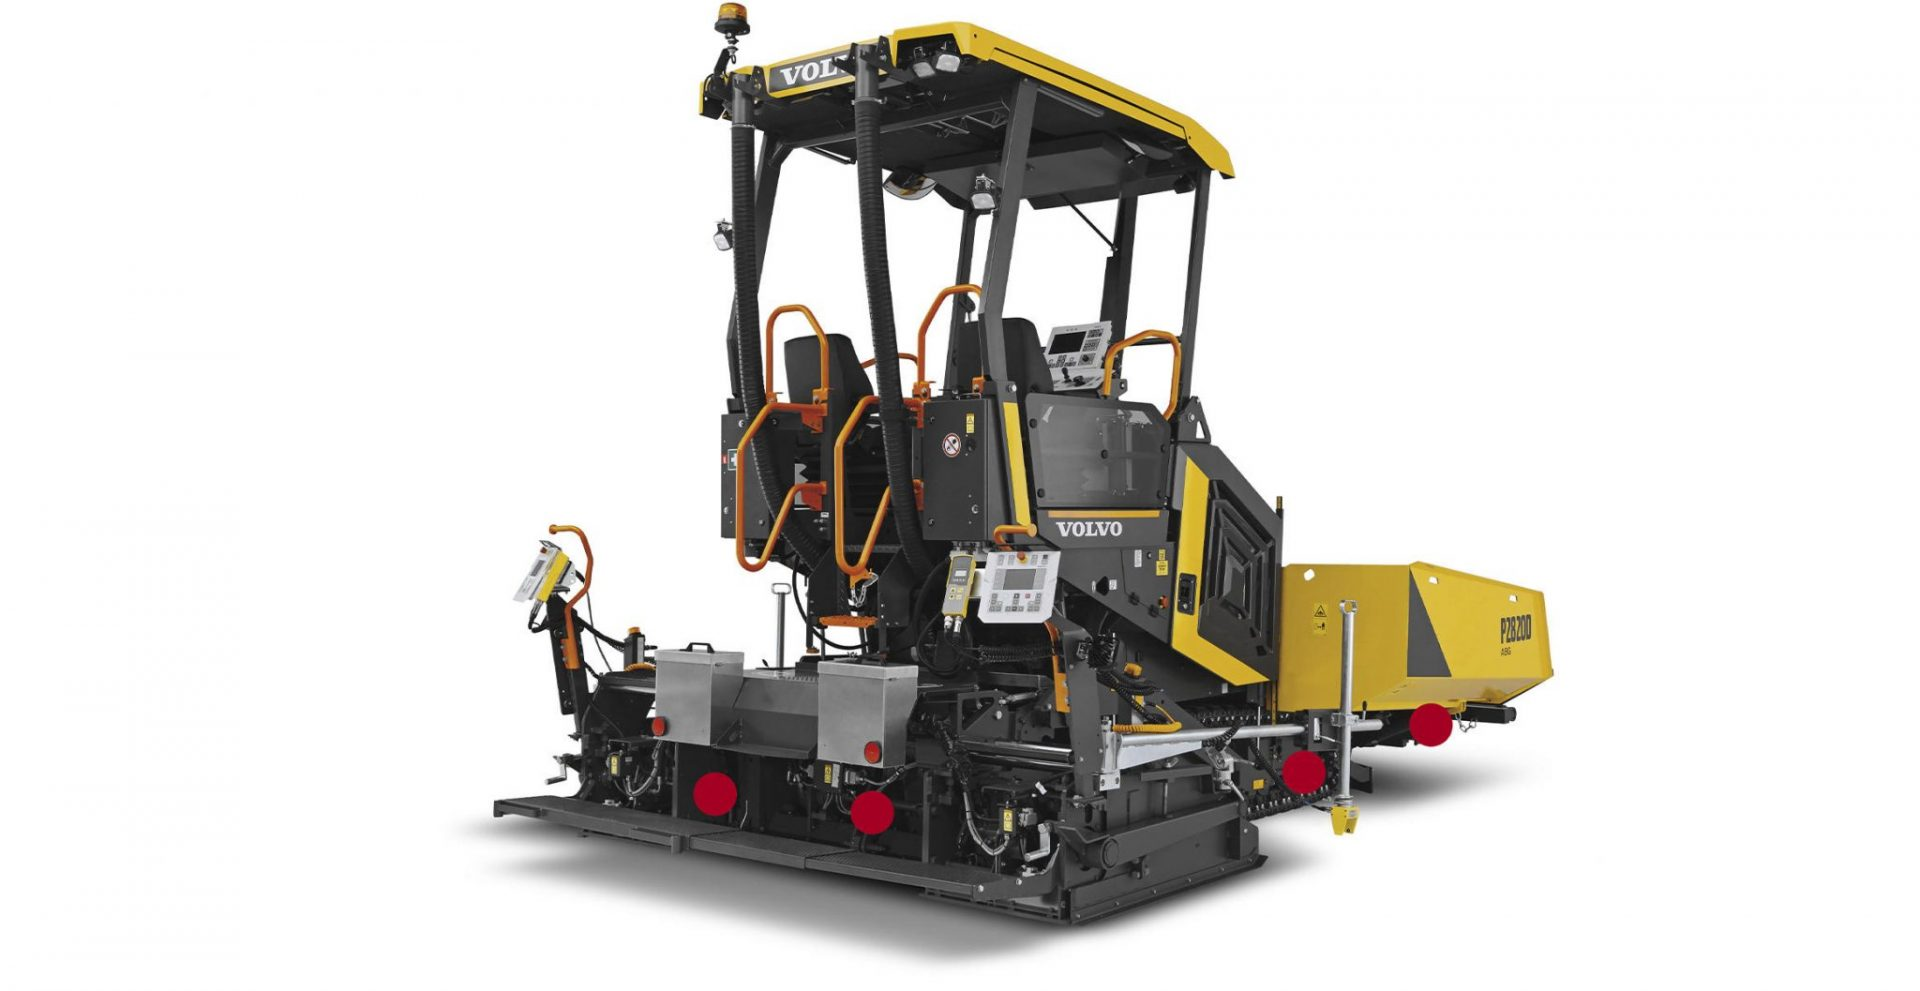 volvo benefits tracked paver p2820d t3 stagev maintaining uptime 23241200